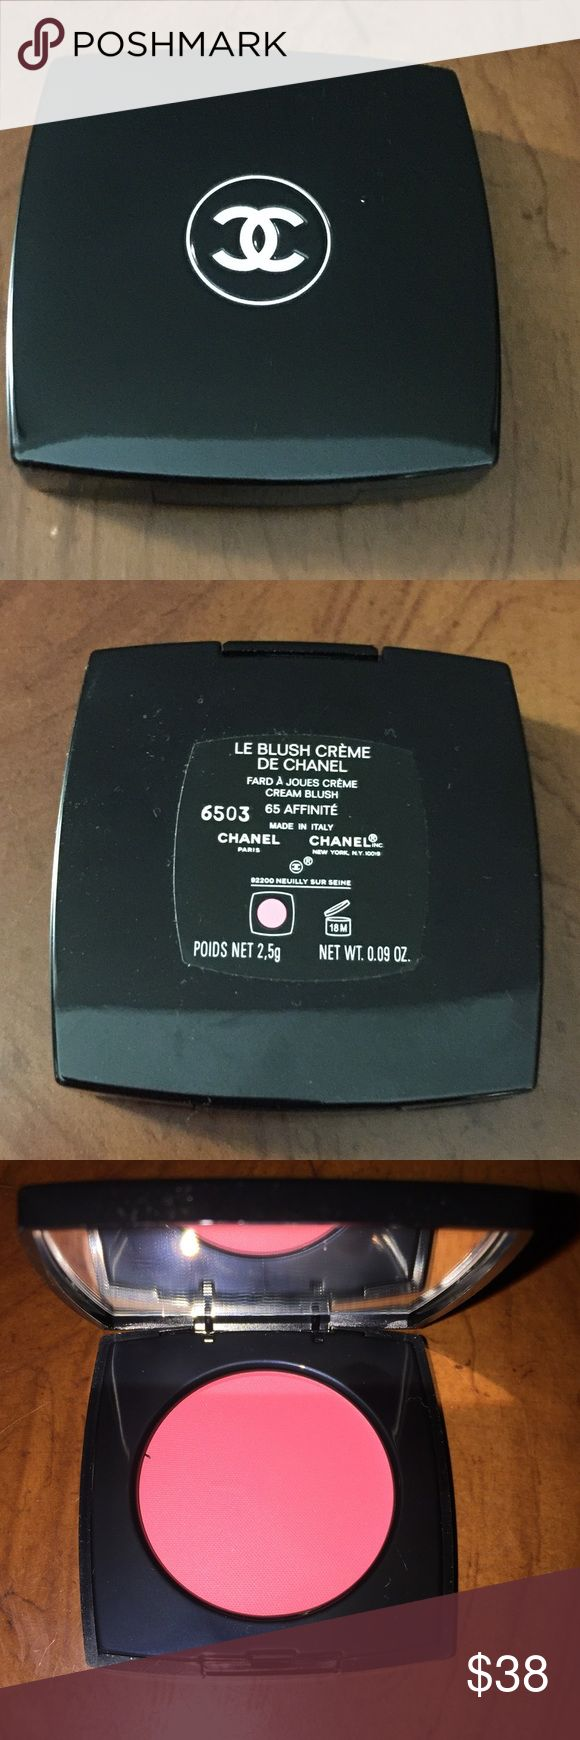 Le Blush Creme De Chanel Creme blush. 65 Affinite is the color. Never used or swatched. Brand new CHANEL Makeup Blush